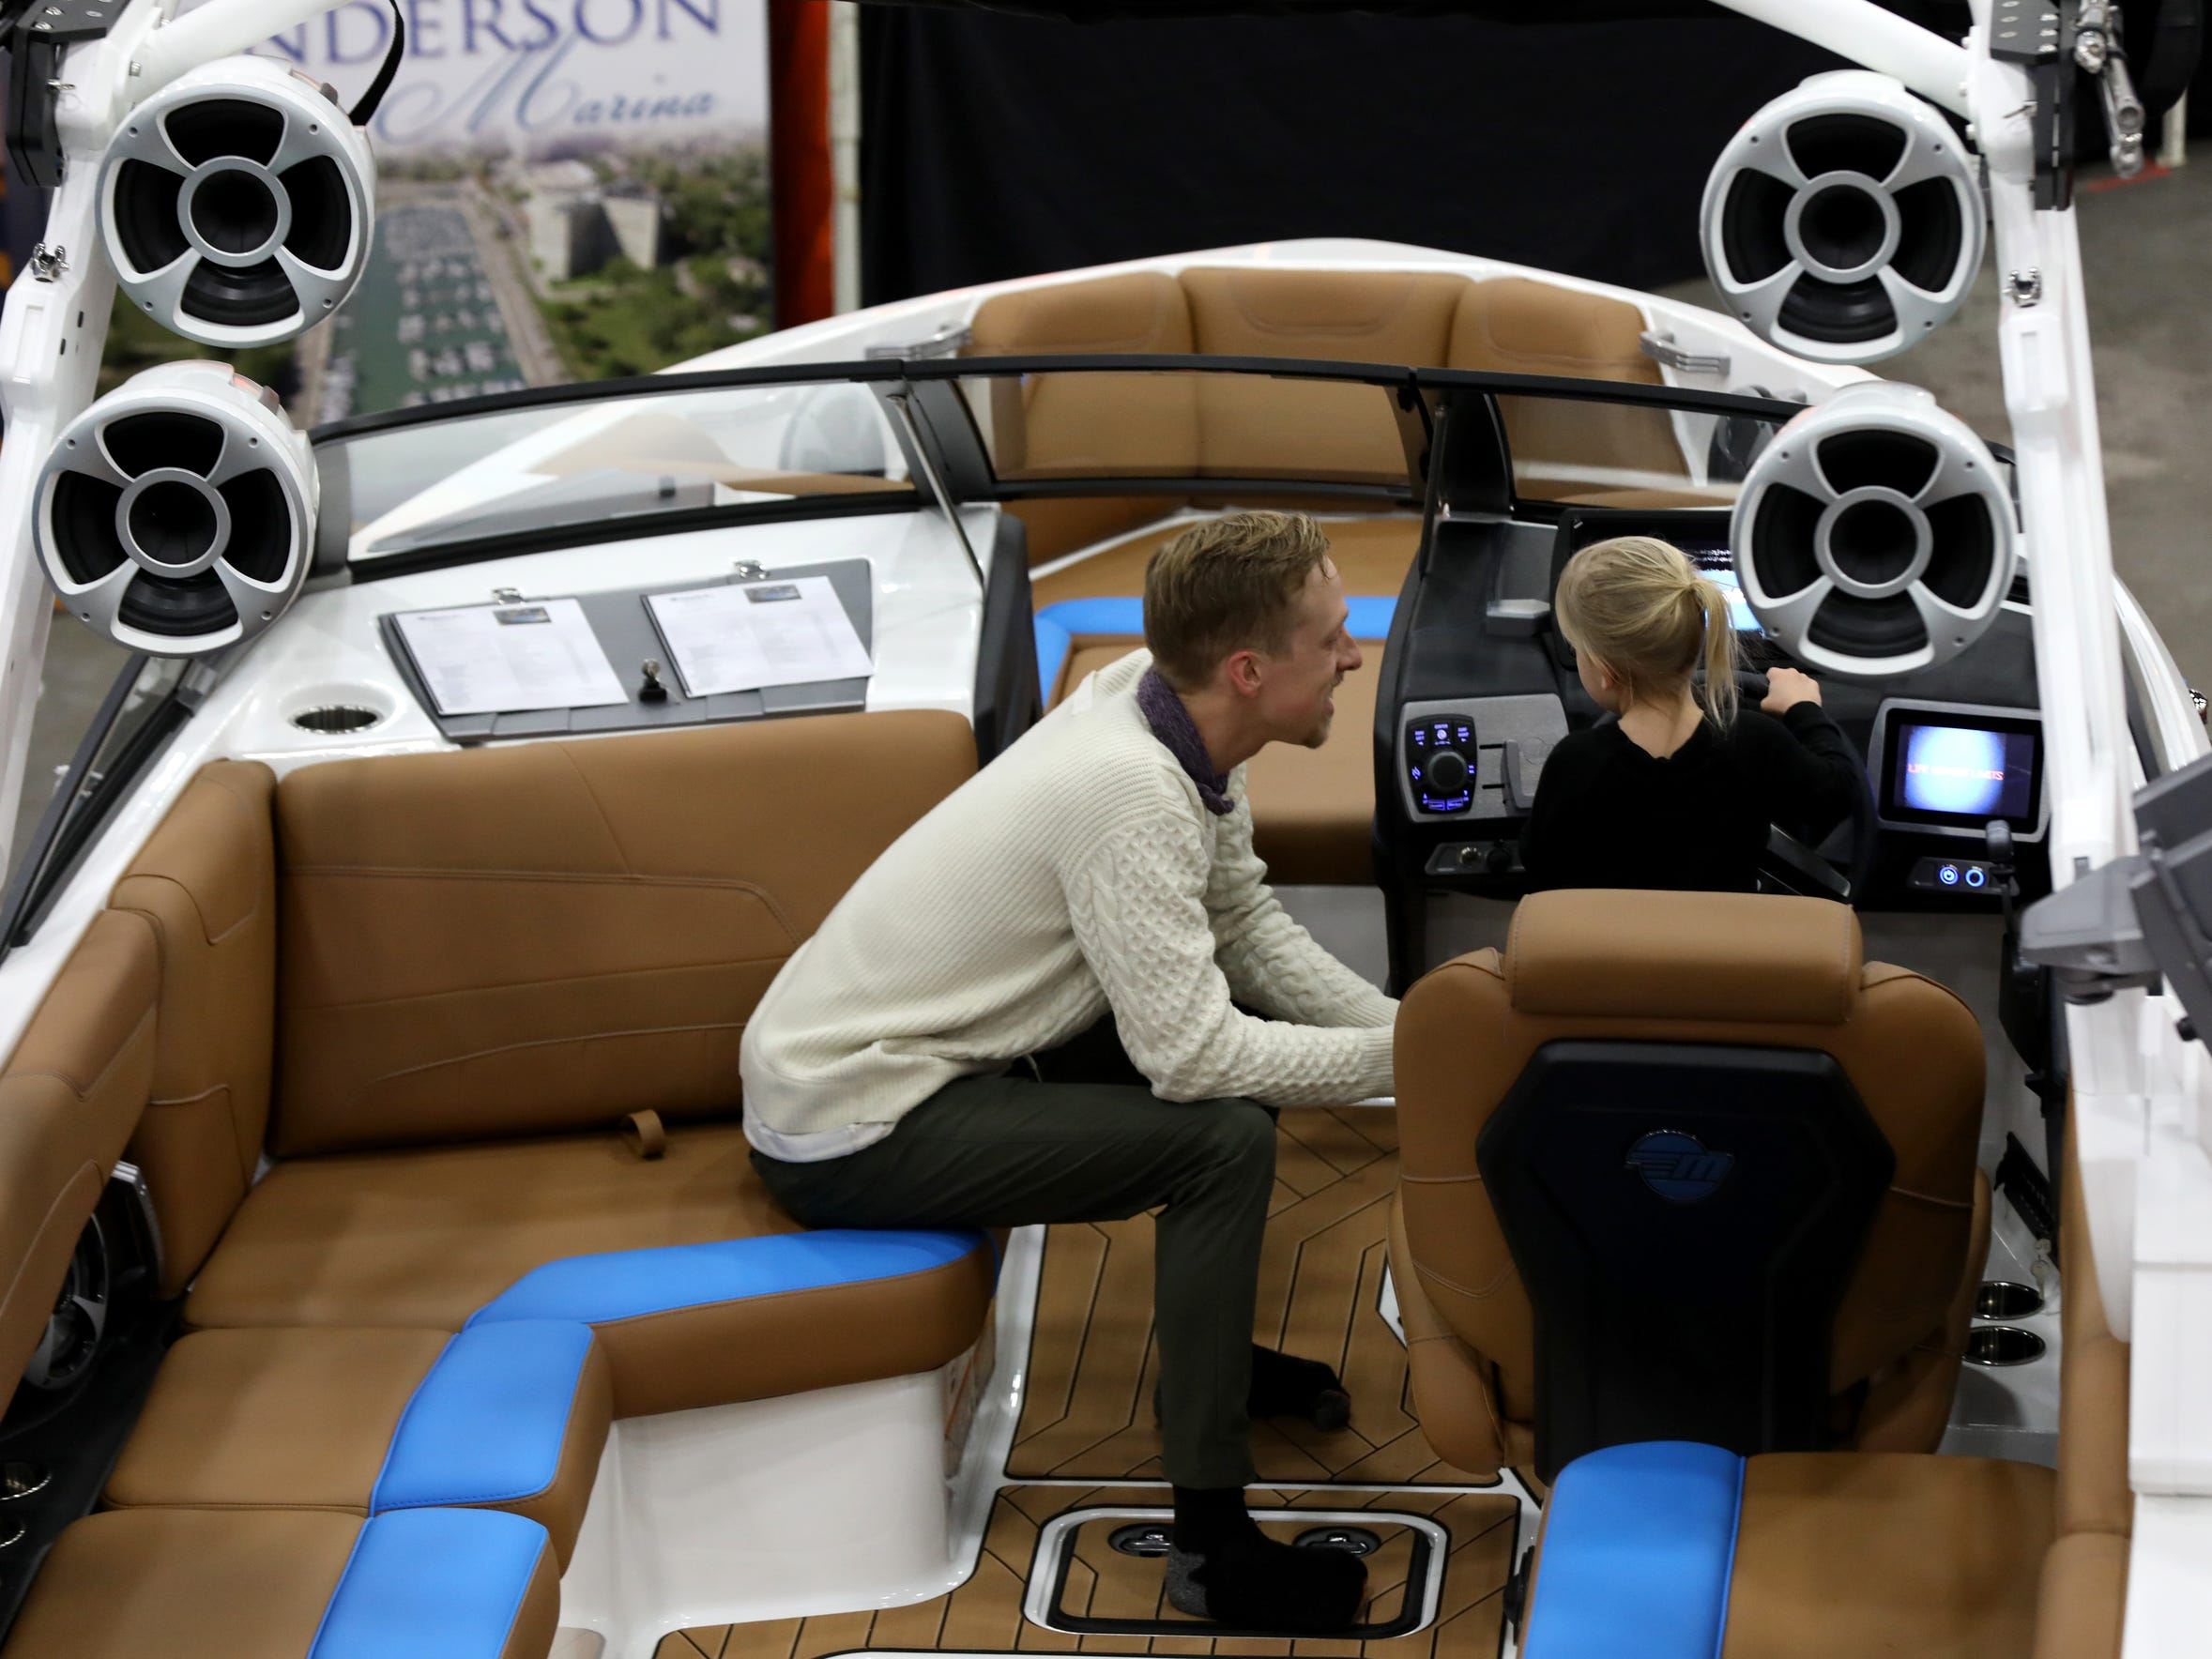 Brad Augustine, 30 of Grosse Pointe watching his daughter Isabella Augustine, 3 play around with the steering wheel on this Malibu boat at the Tommy's of Detroit display during the Detroit Boat Show at Cobo Center in Detroit on Saturday, February 16, 2019..